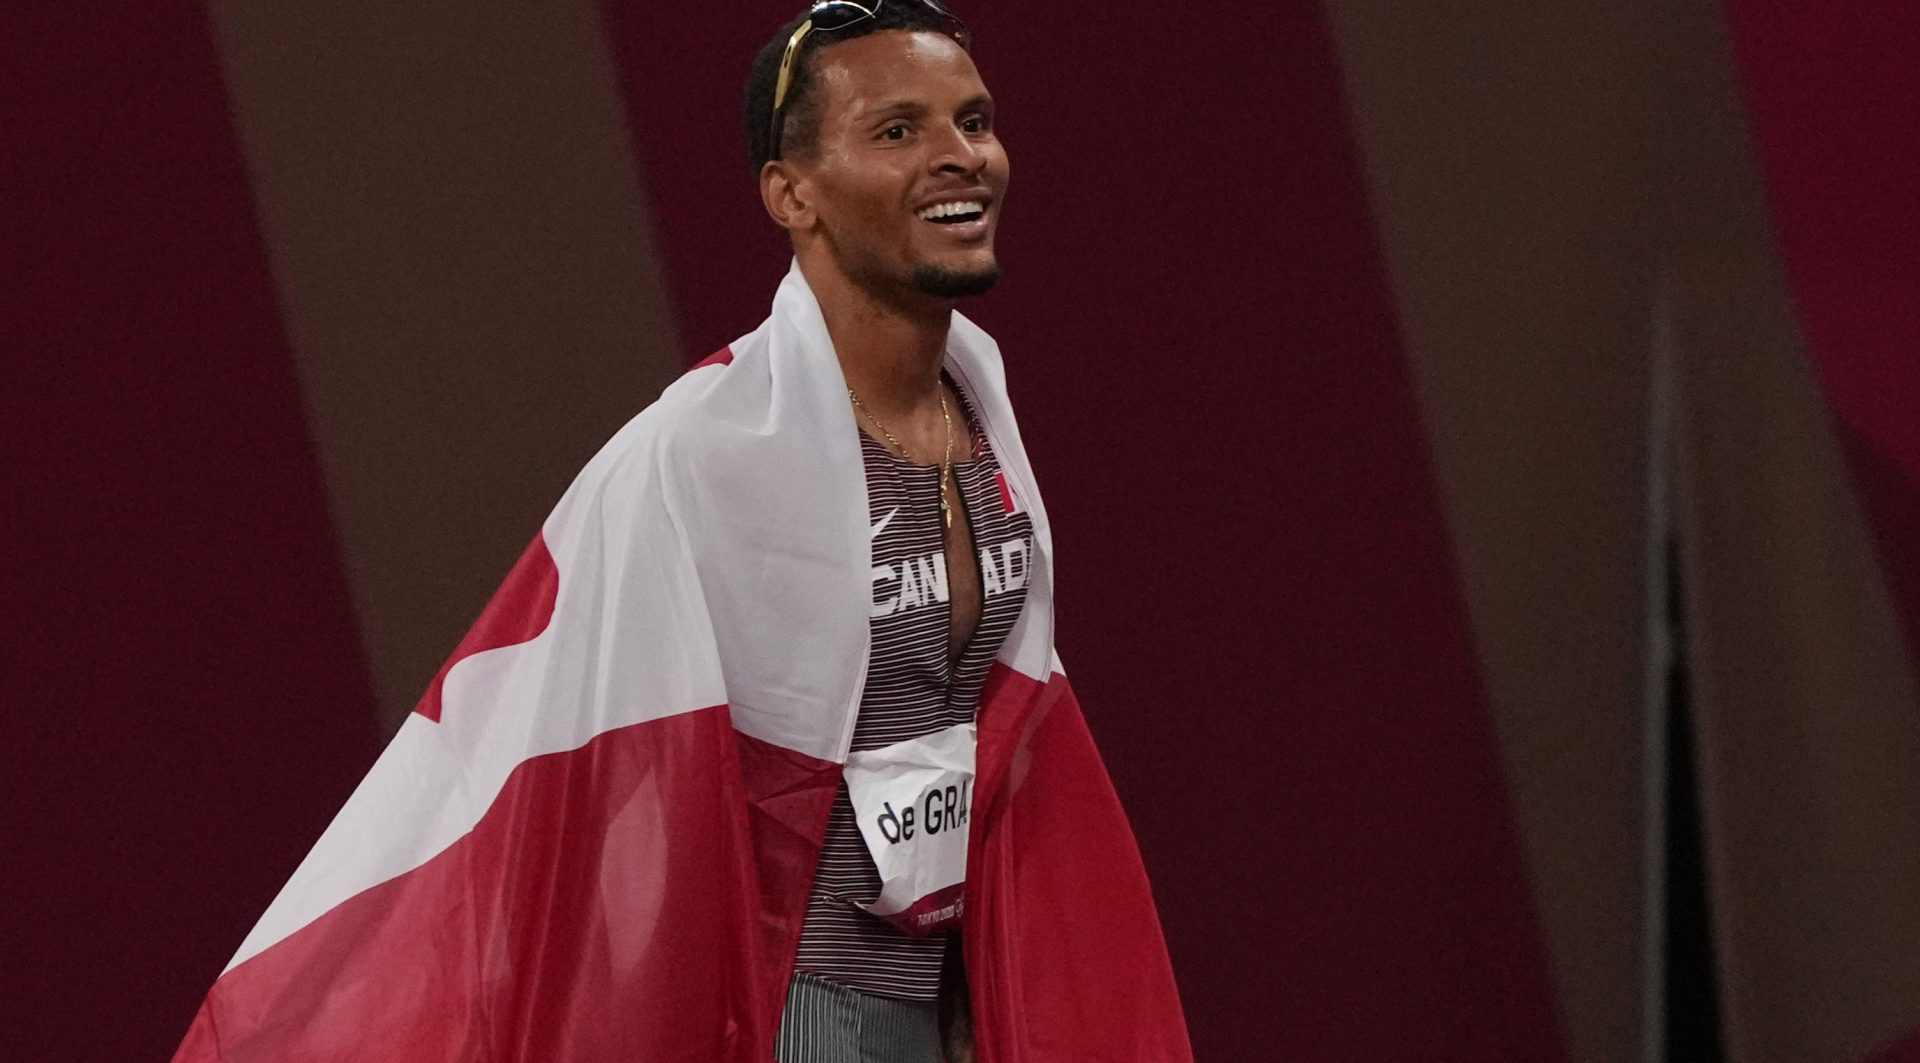 """Andre De Grasse on winning first Olympic gold medal: """"I finally got it done"""""""